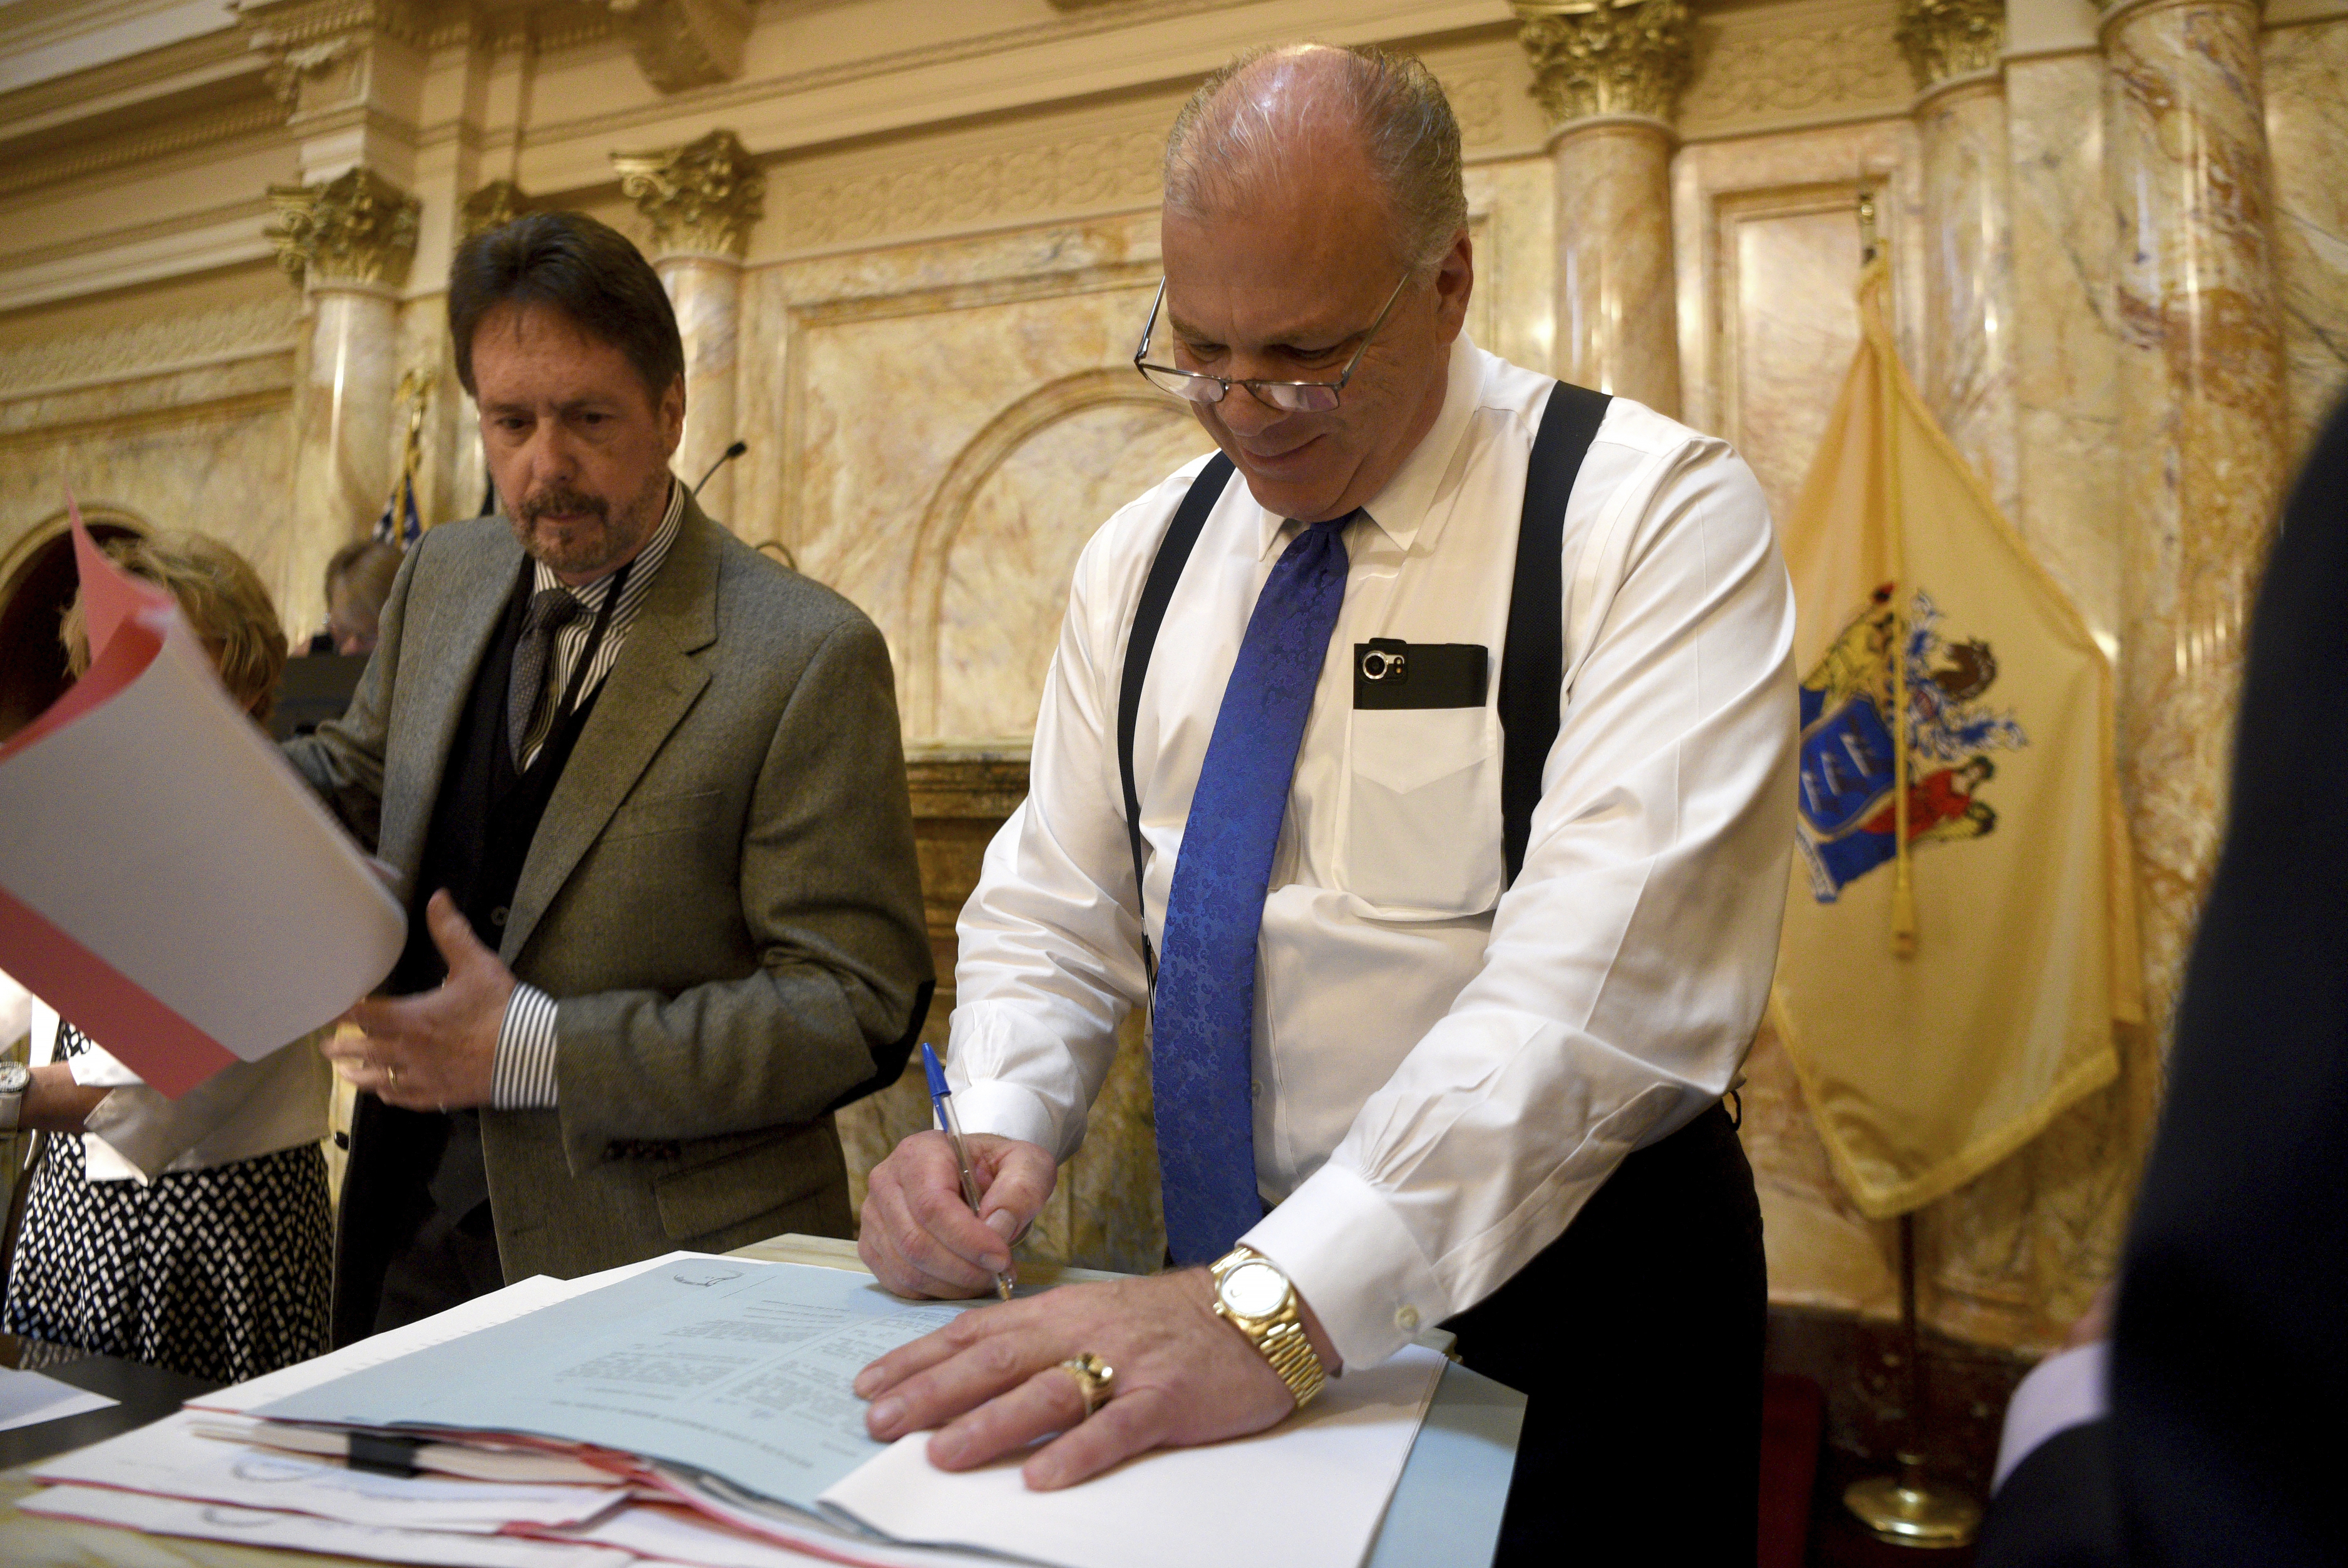 Senate President Stephen Sweeney, right, is locked in a power struggle with Gov. Murphy.